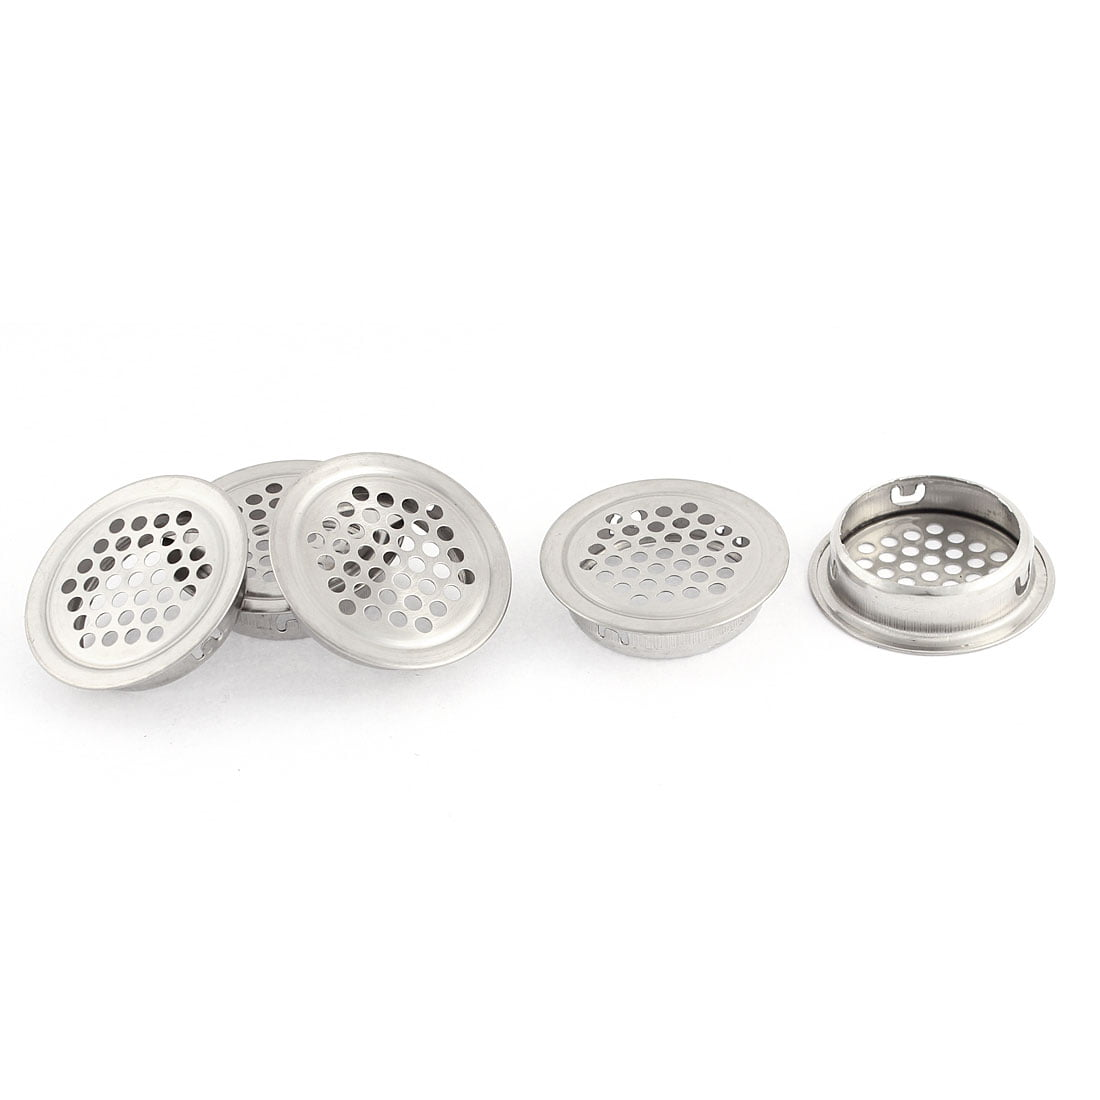 Uxcell Home Water Sink Drainer Strainer with 3.1 Dia Silver Tone